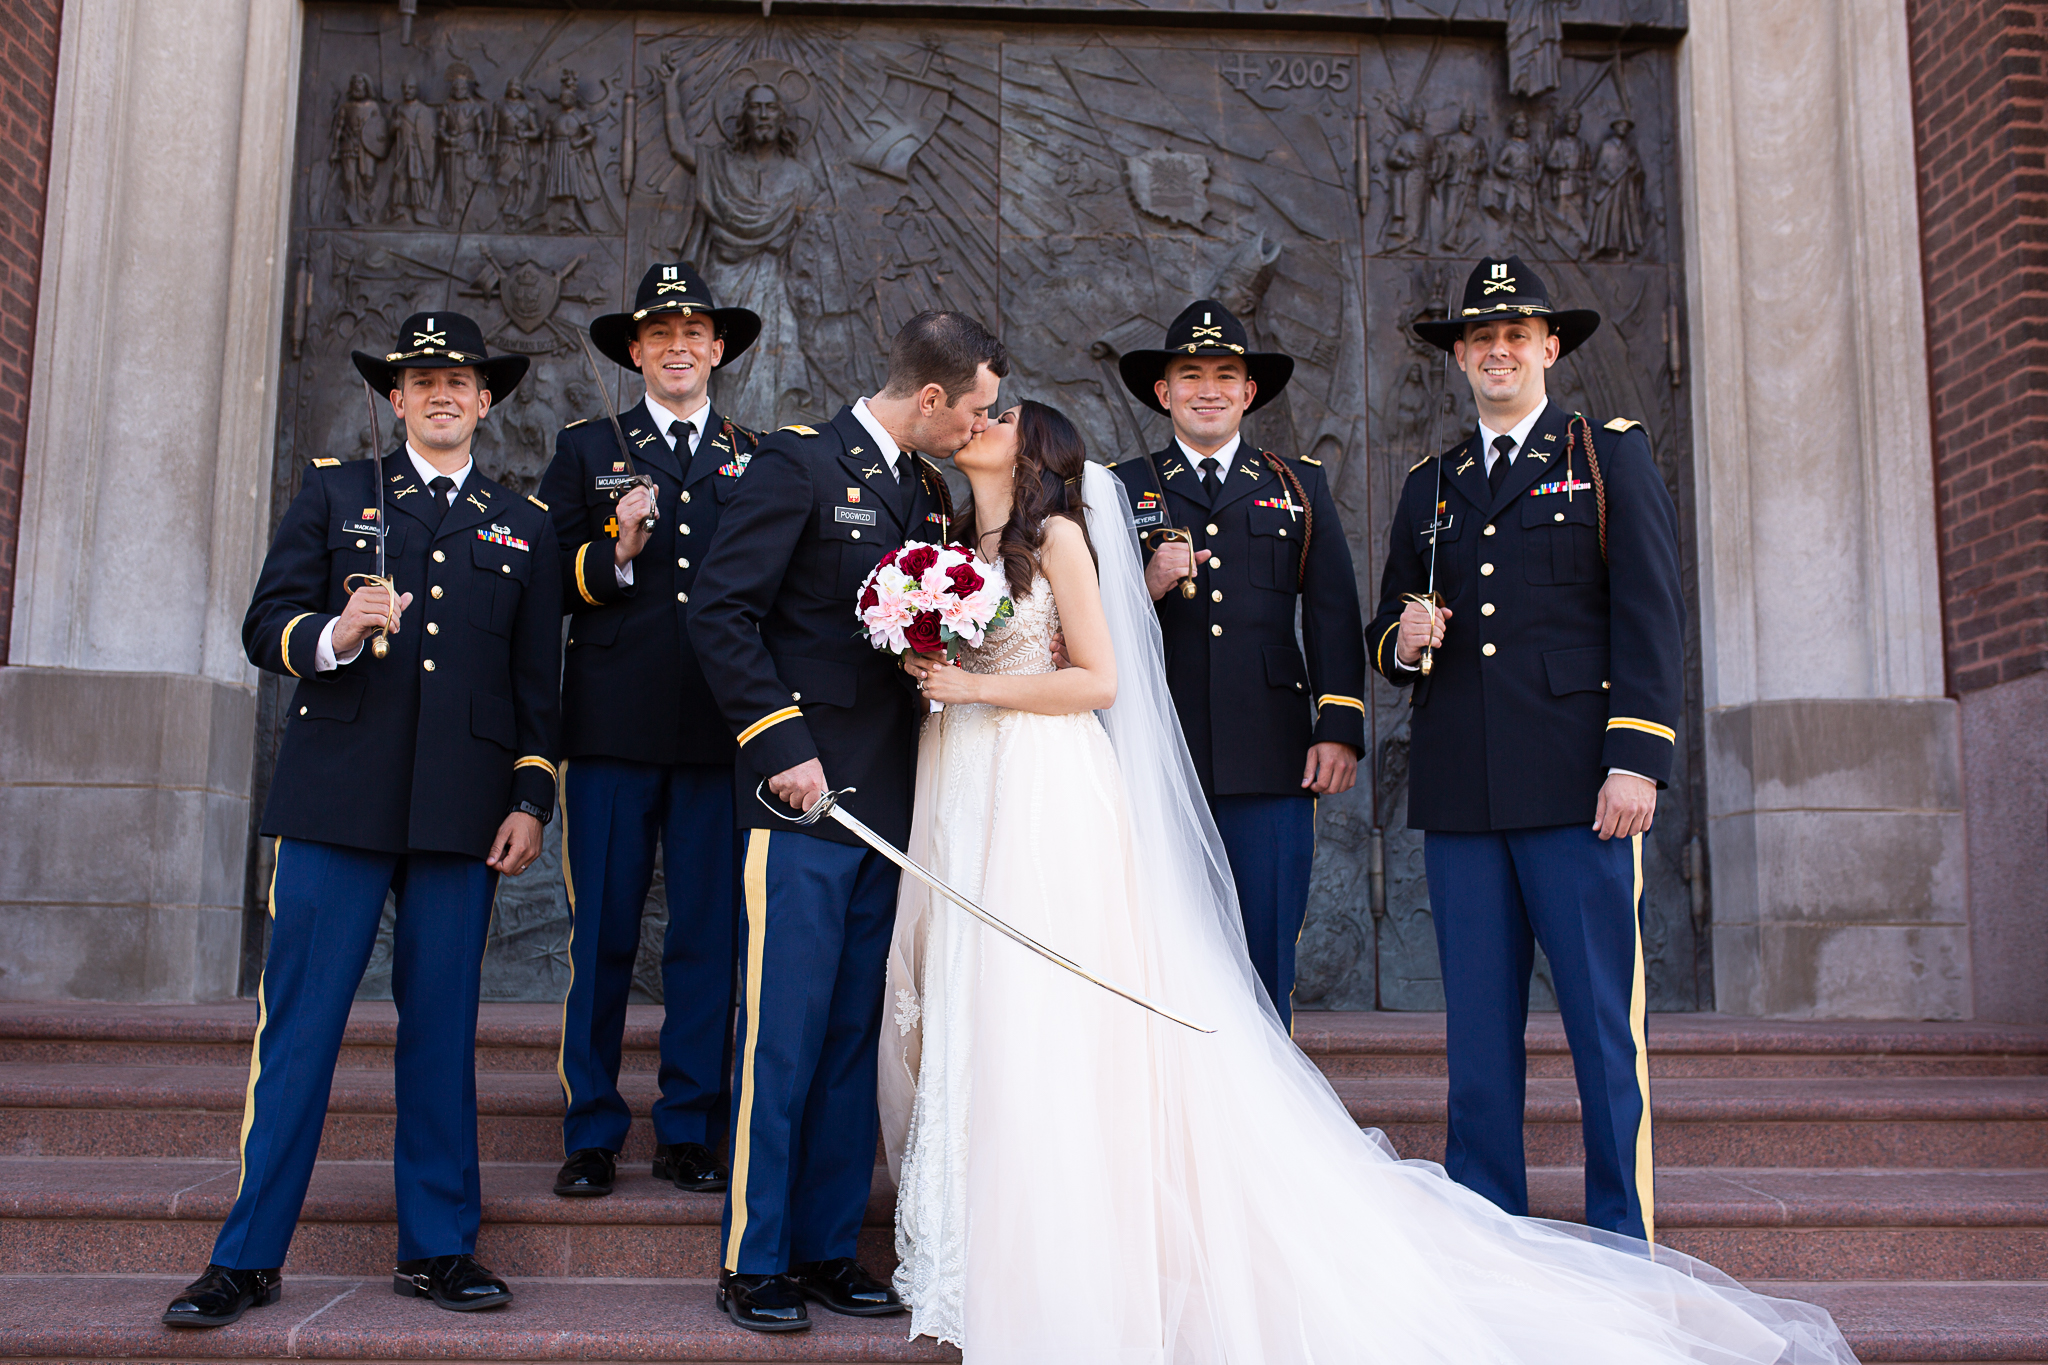 Bride and groom posing with bridal party Marines